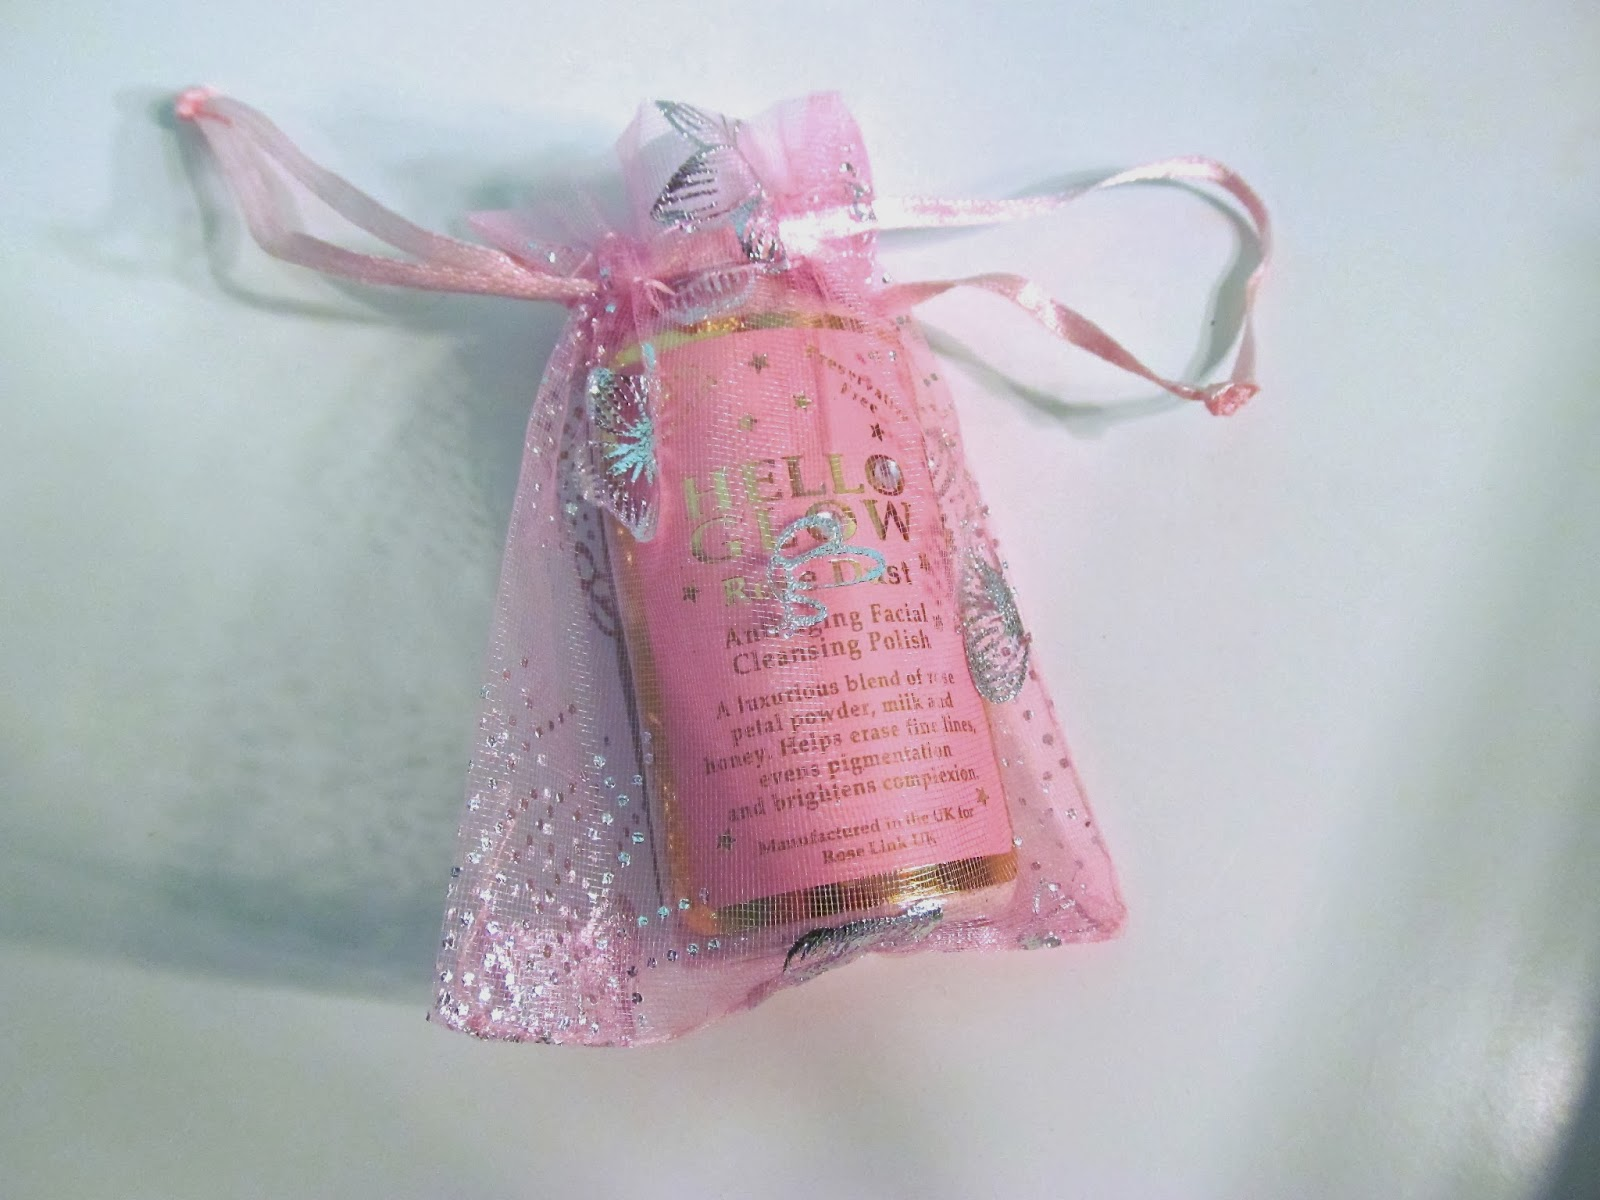 Hello Glow Rose Dust - Anti-ageing Facial Cleansing Polish